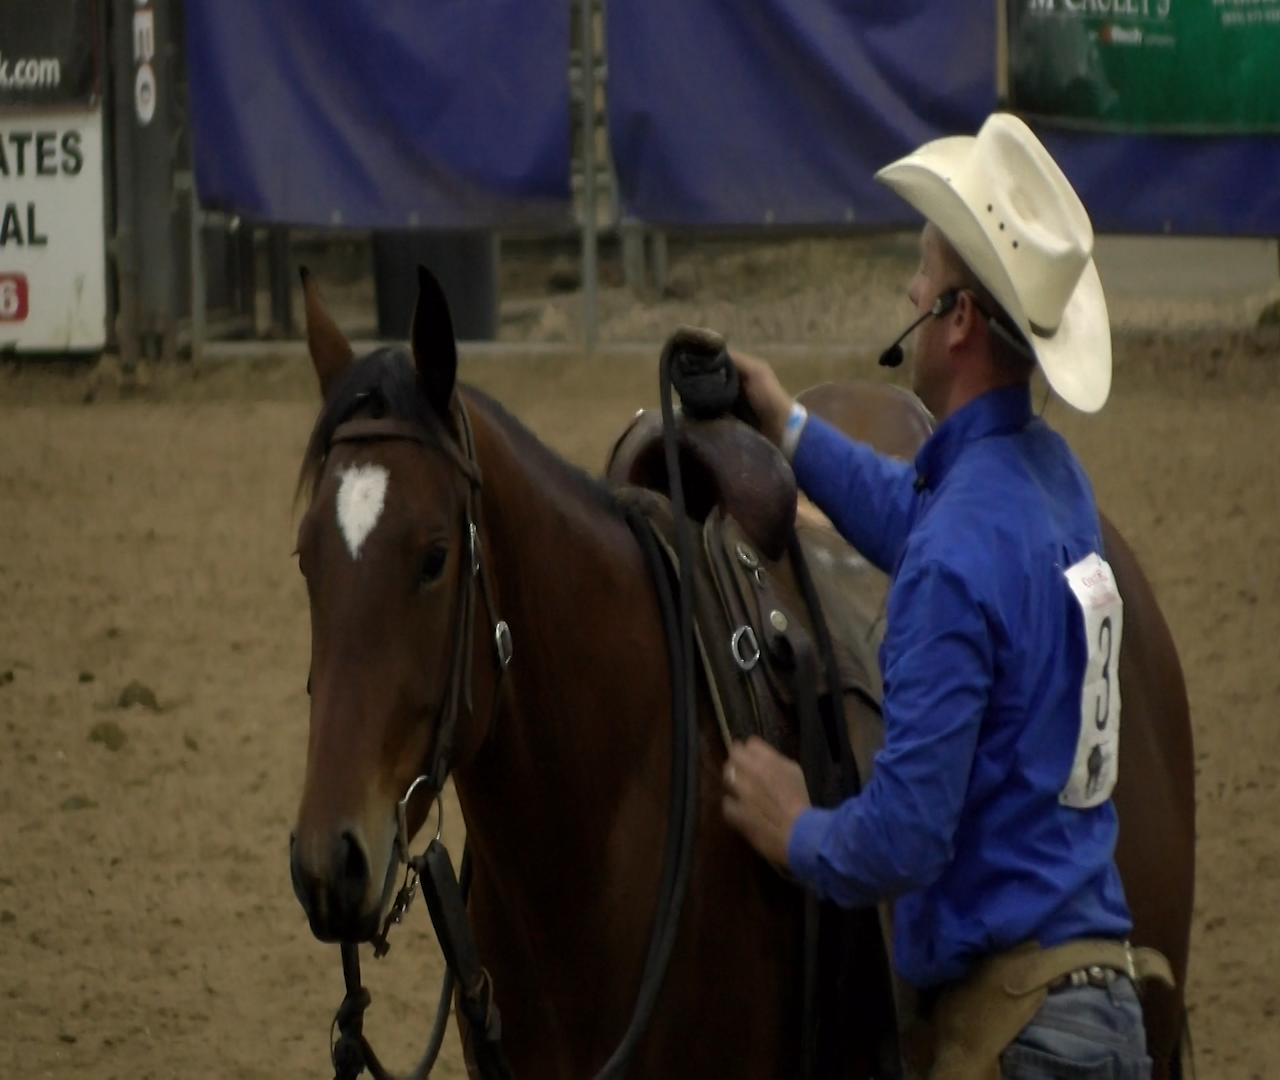 Equines entertain at 2018 Black Hills Horse Expo - KNBN NewsCenter1